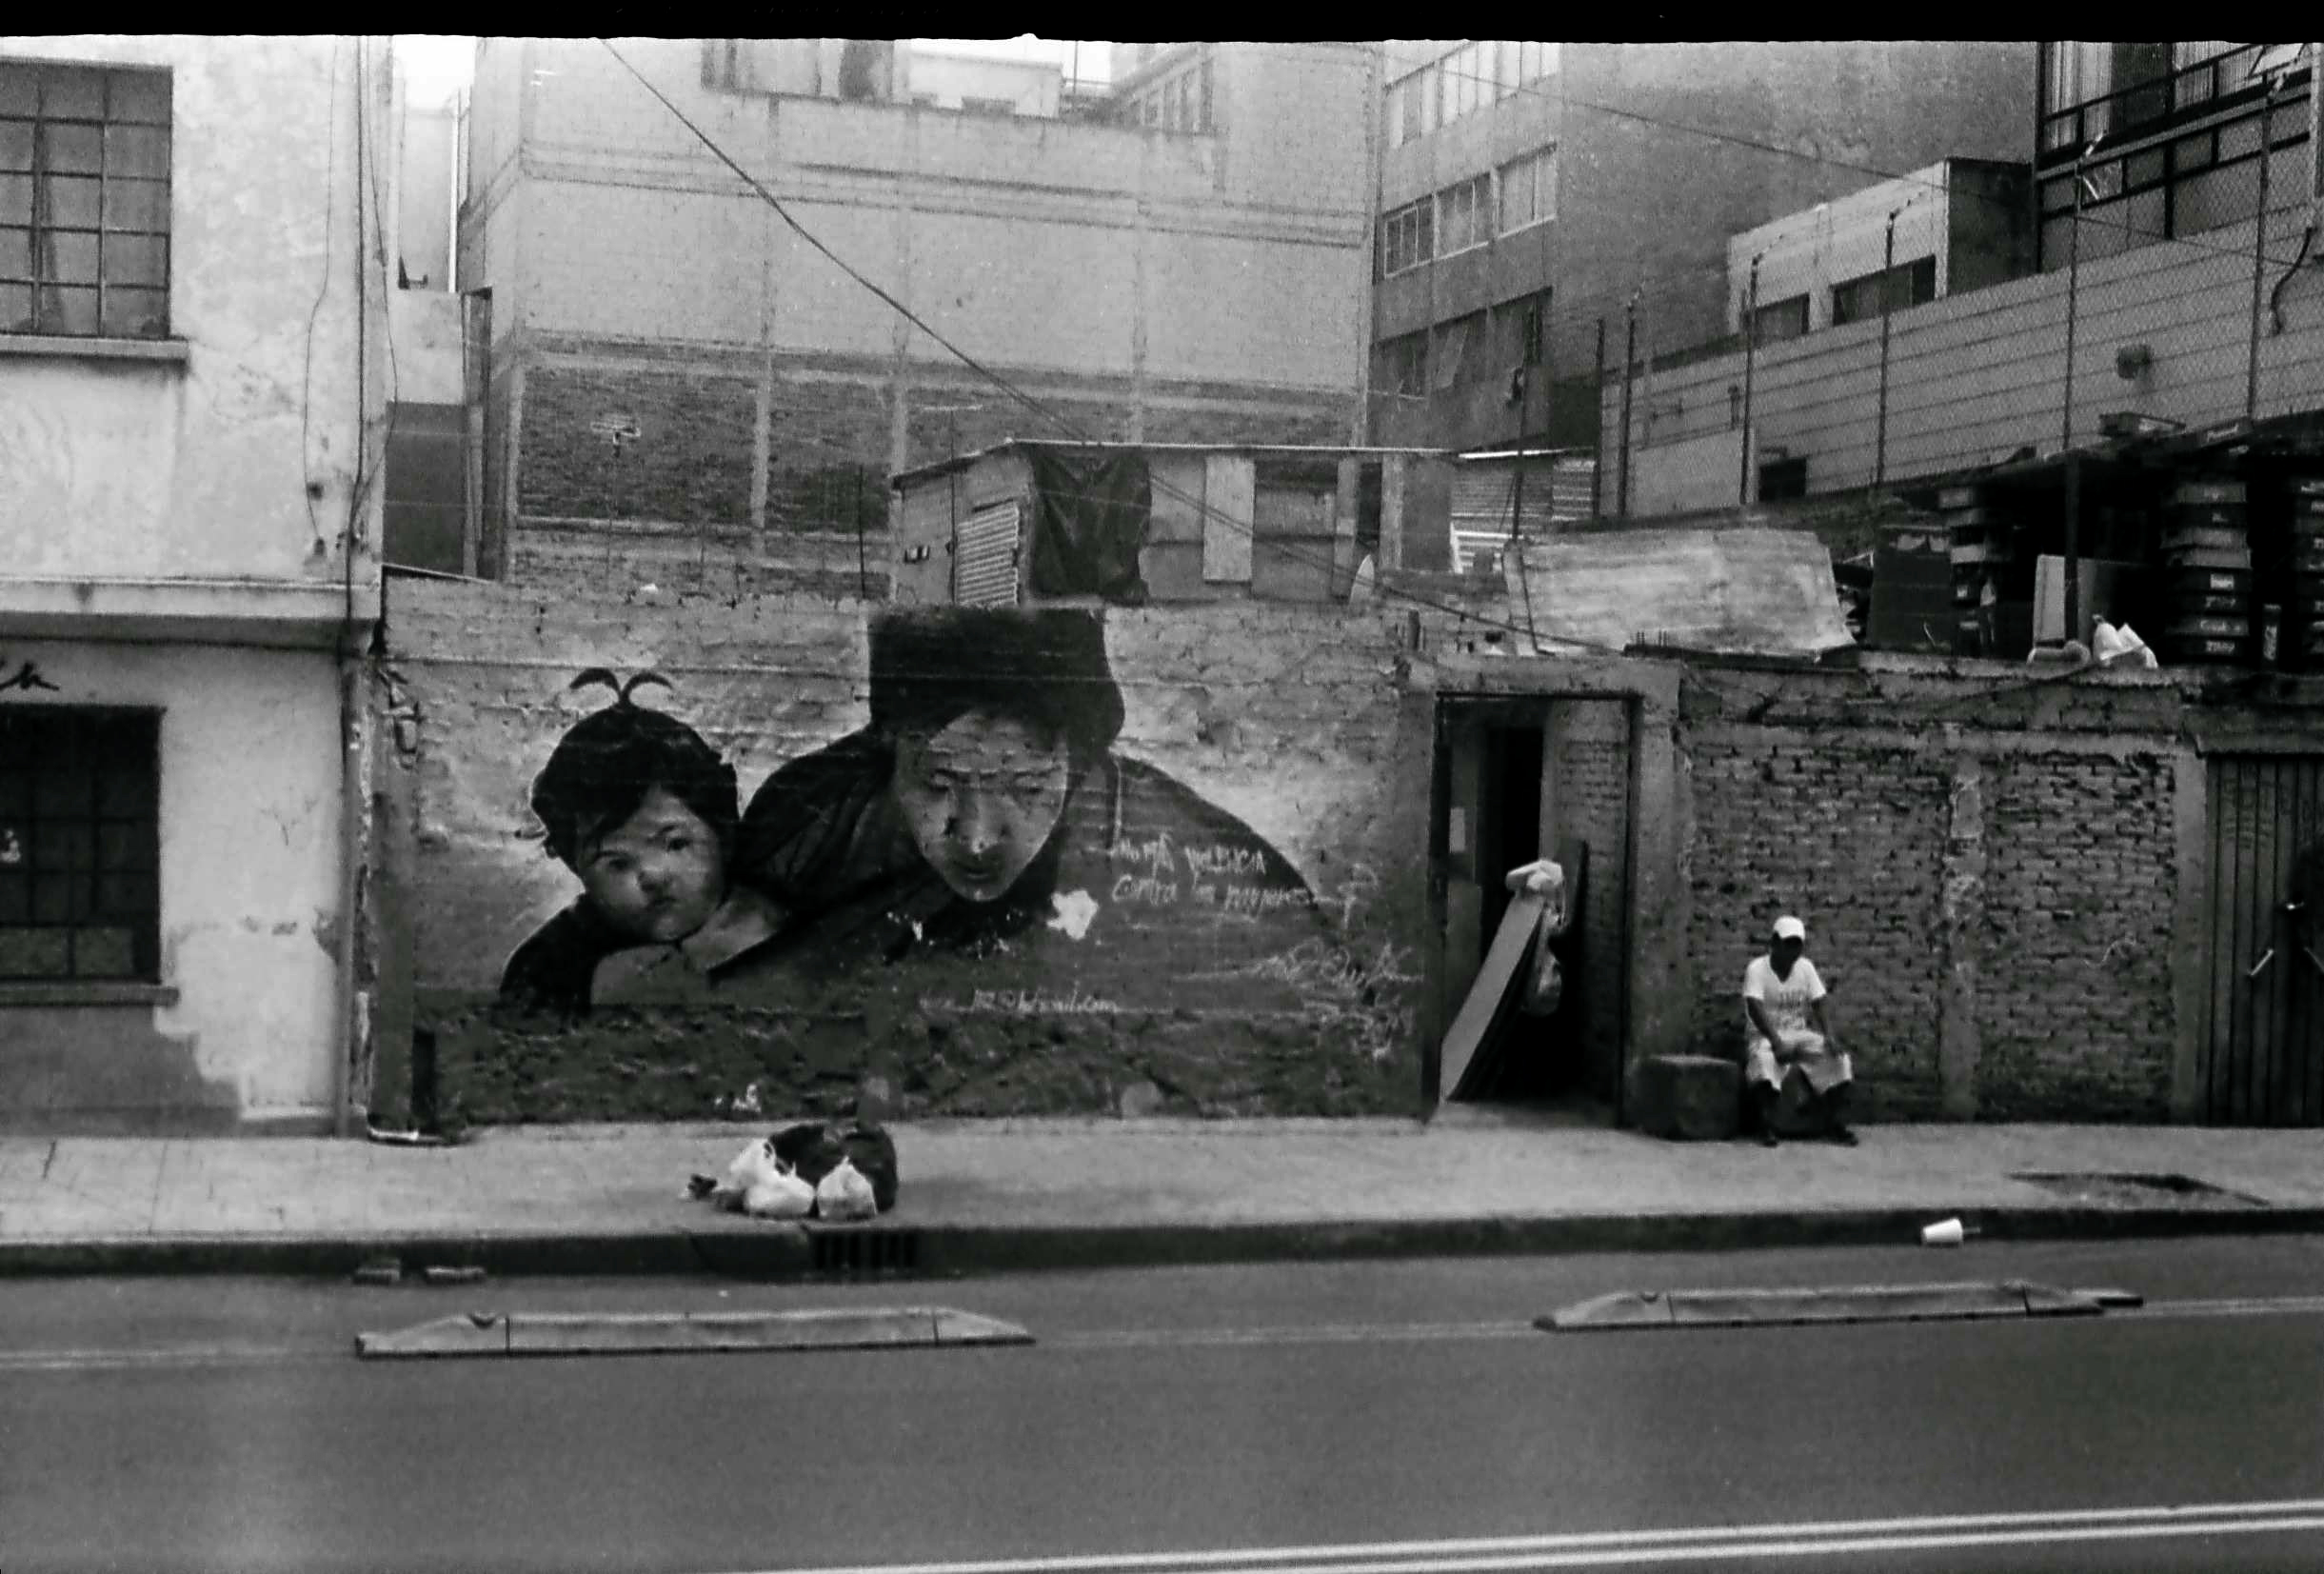 This is right outside my building in Mexico City, downtown on the Roma side. This mural was there for some years, I photographed it with a number of cameras and formats, including 127 on a toy camera. It is now a sad yellowish wall. This is shot on Kodak 400 TX with my Fed-2 + 50mm Jupiter f2.8